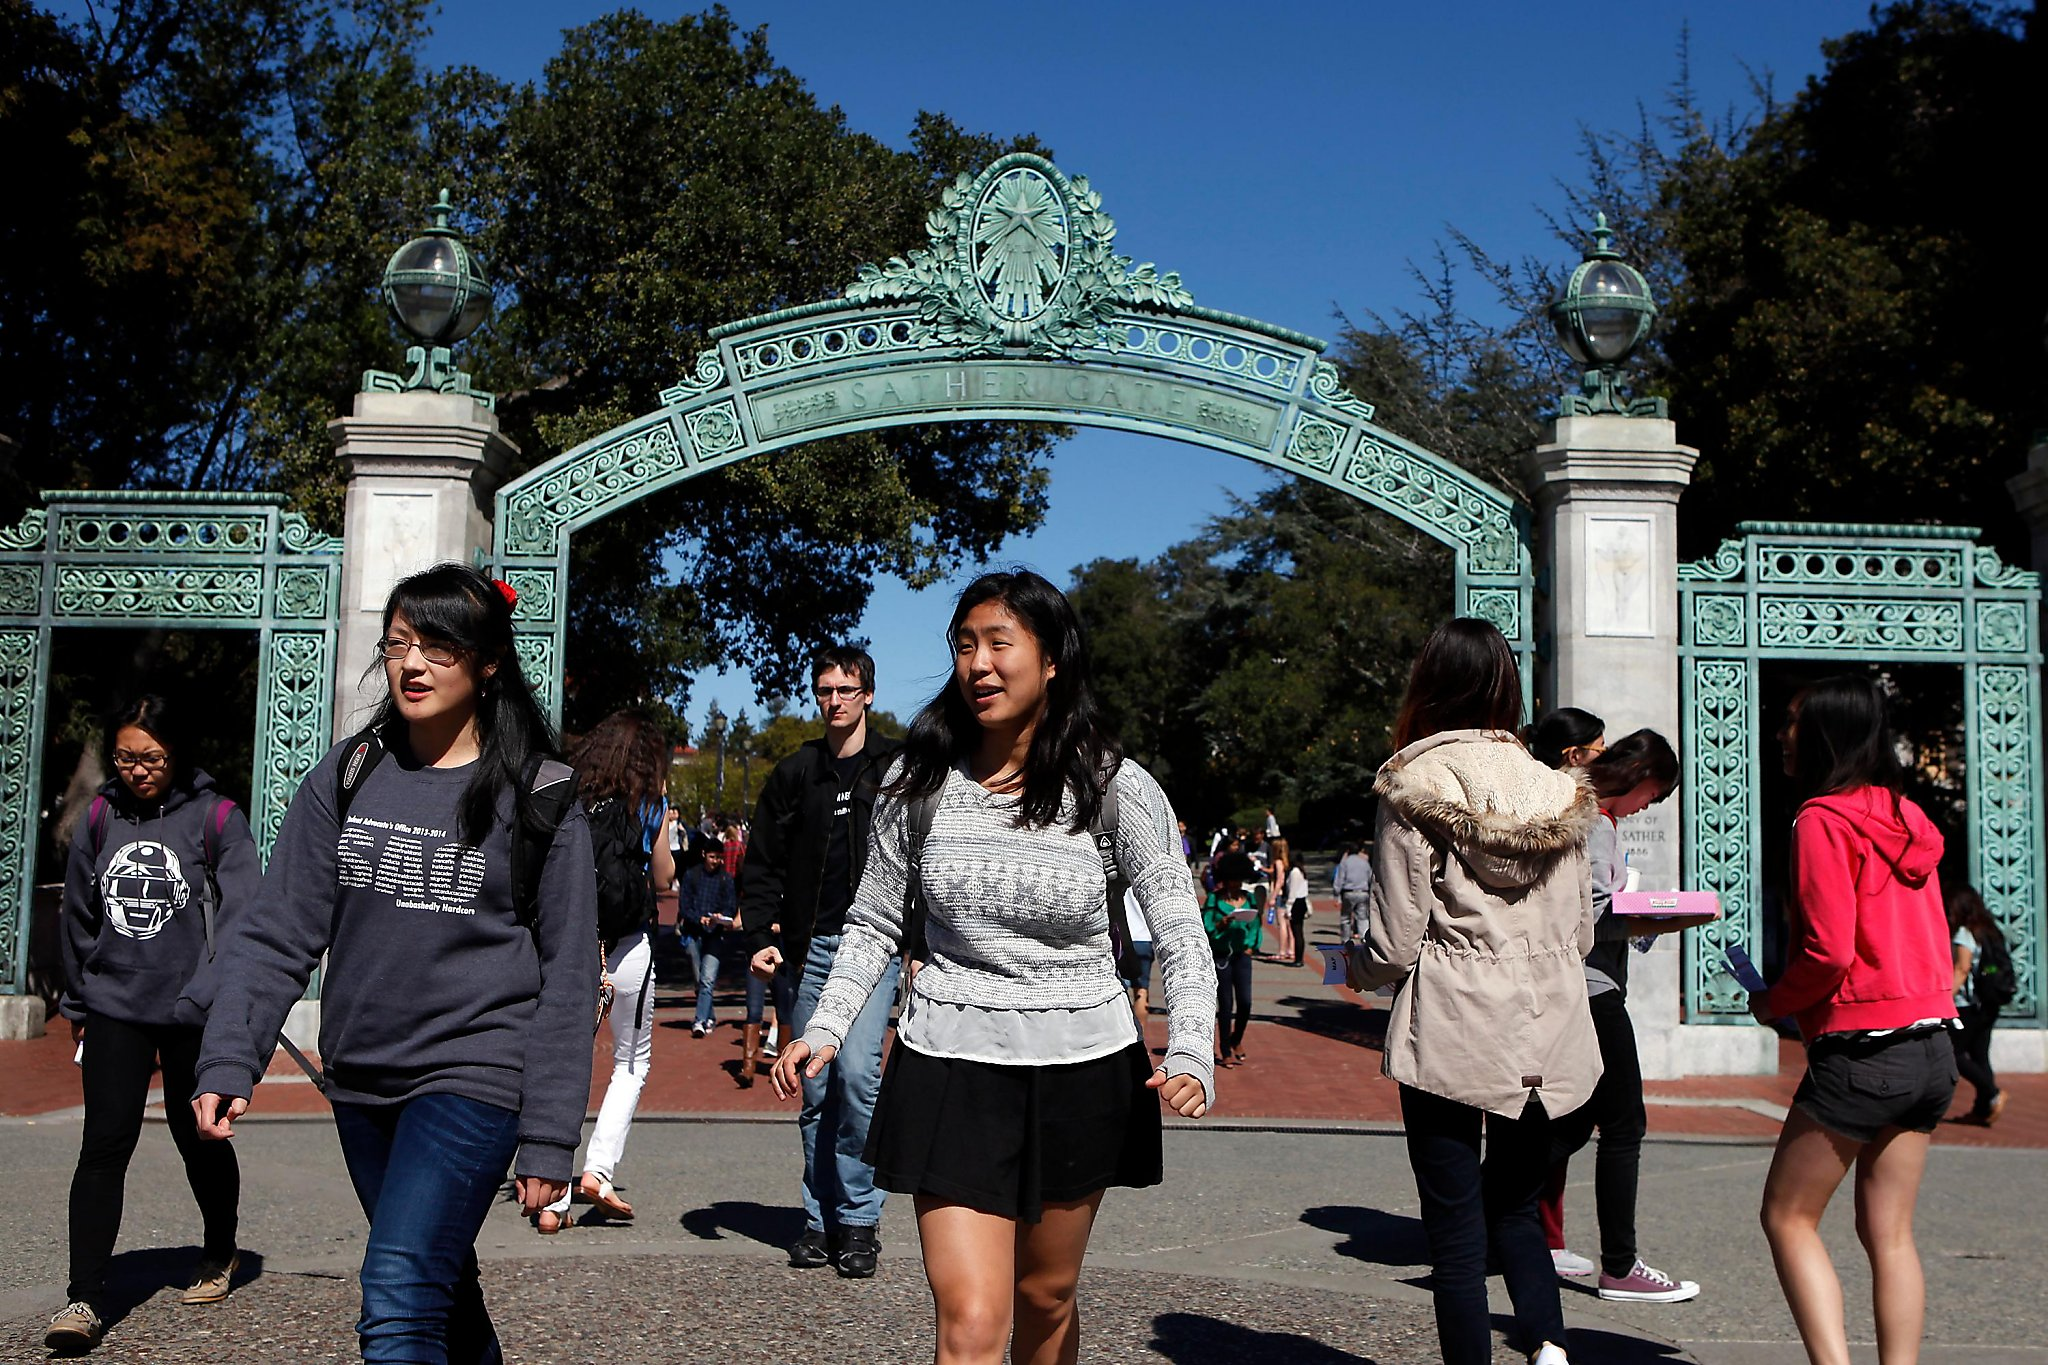 State audit: UC Berkeley admitted at least 55 underqualified students based on connections and donations